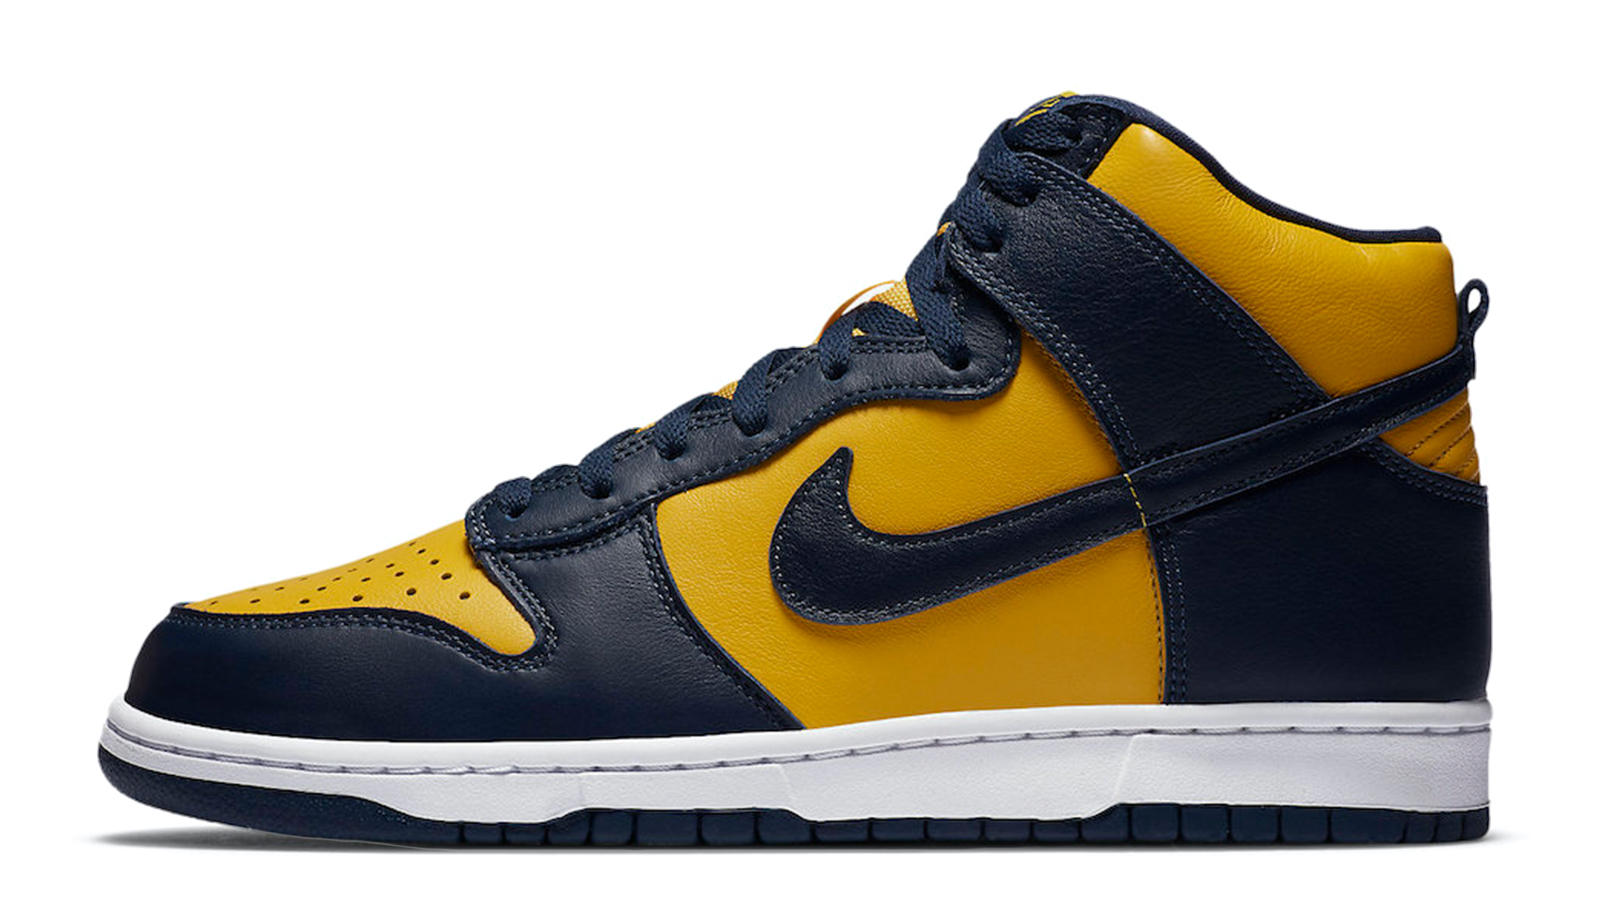 Nike Dunk Hi Michigan CZ8149-700